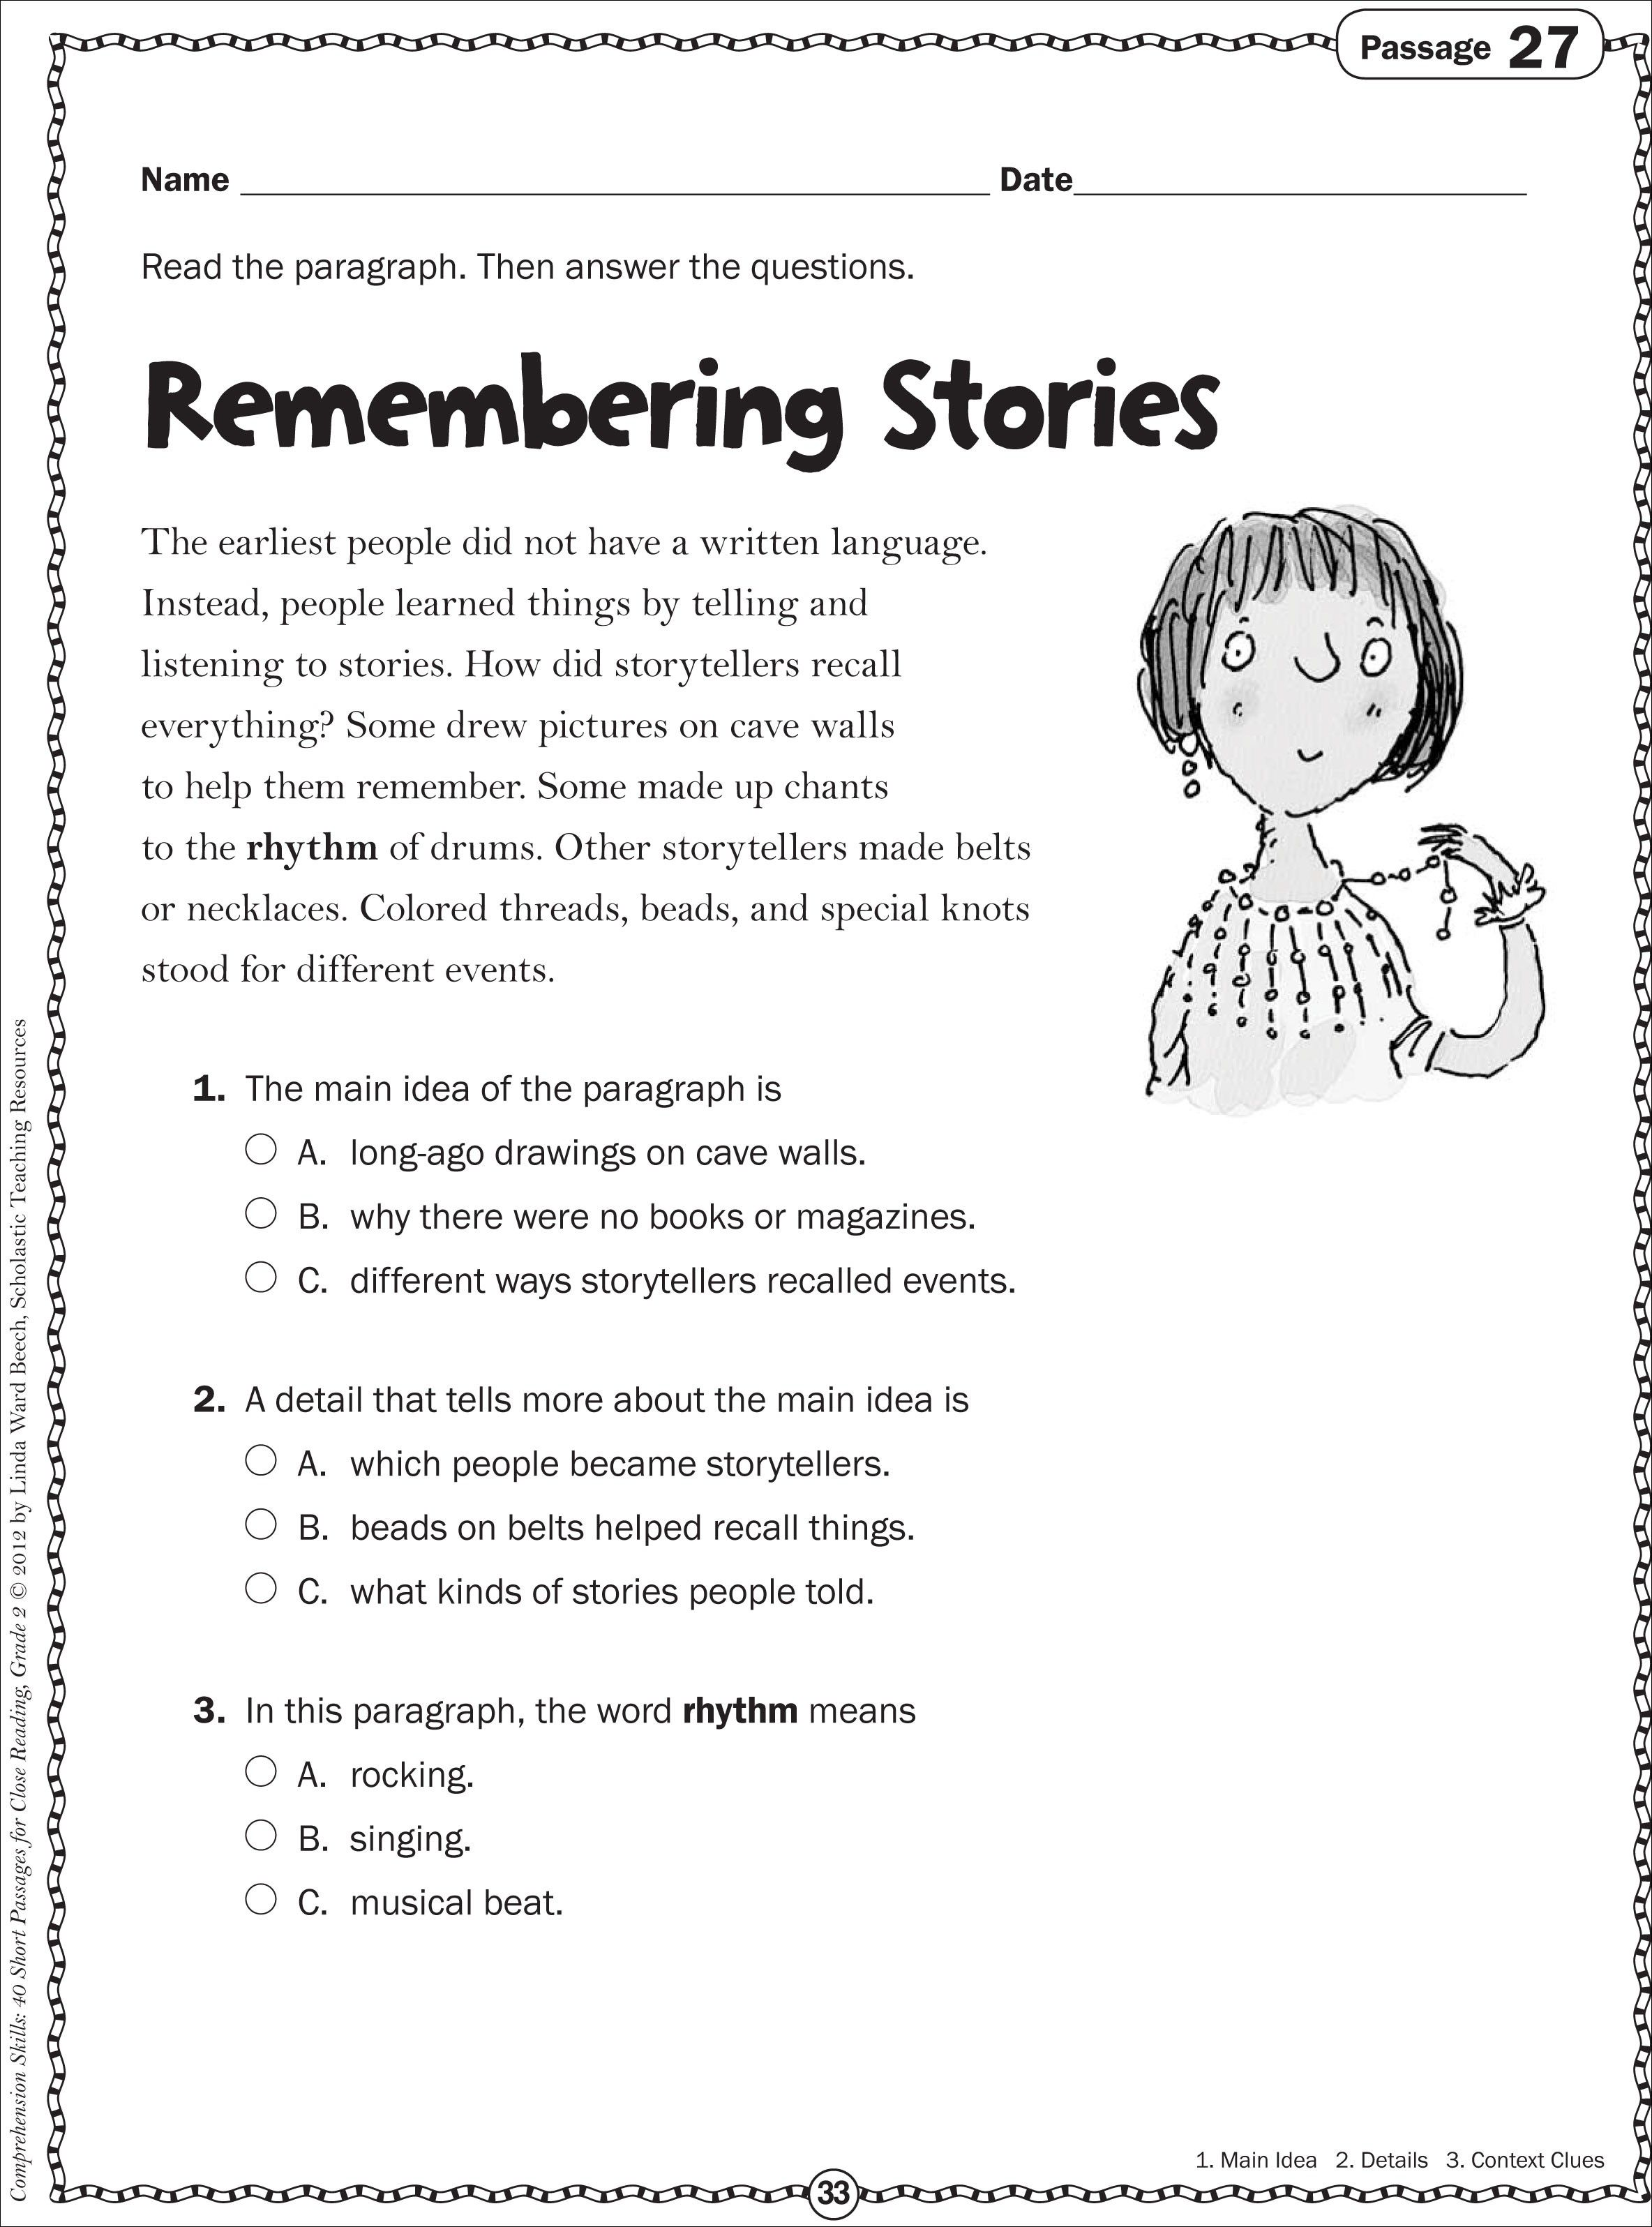 Worksheet Passages For Reading Comprehension grade 2 reading passages memarchoapraga school pinterest memarchoapraga